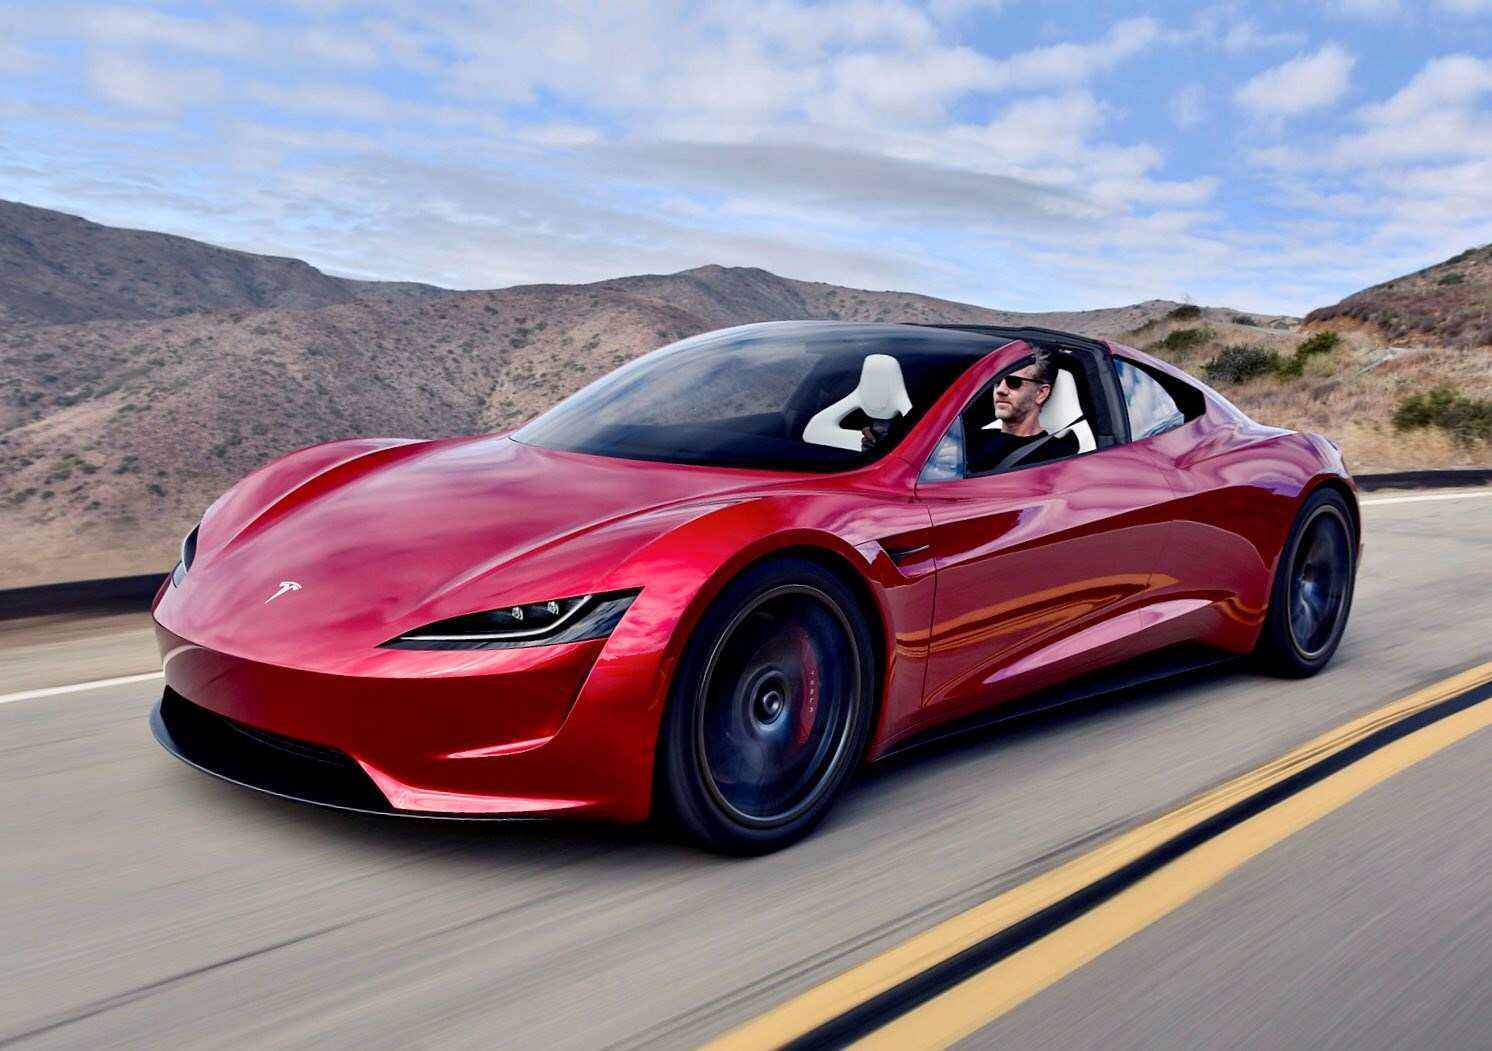 23 New 2020 Tesla Roadster Weight 2 Style with 2020 Tesla Roadster Weight 2